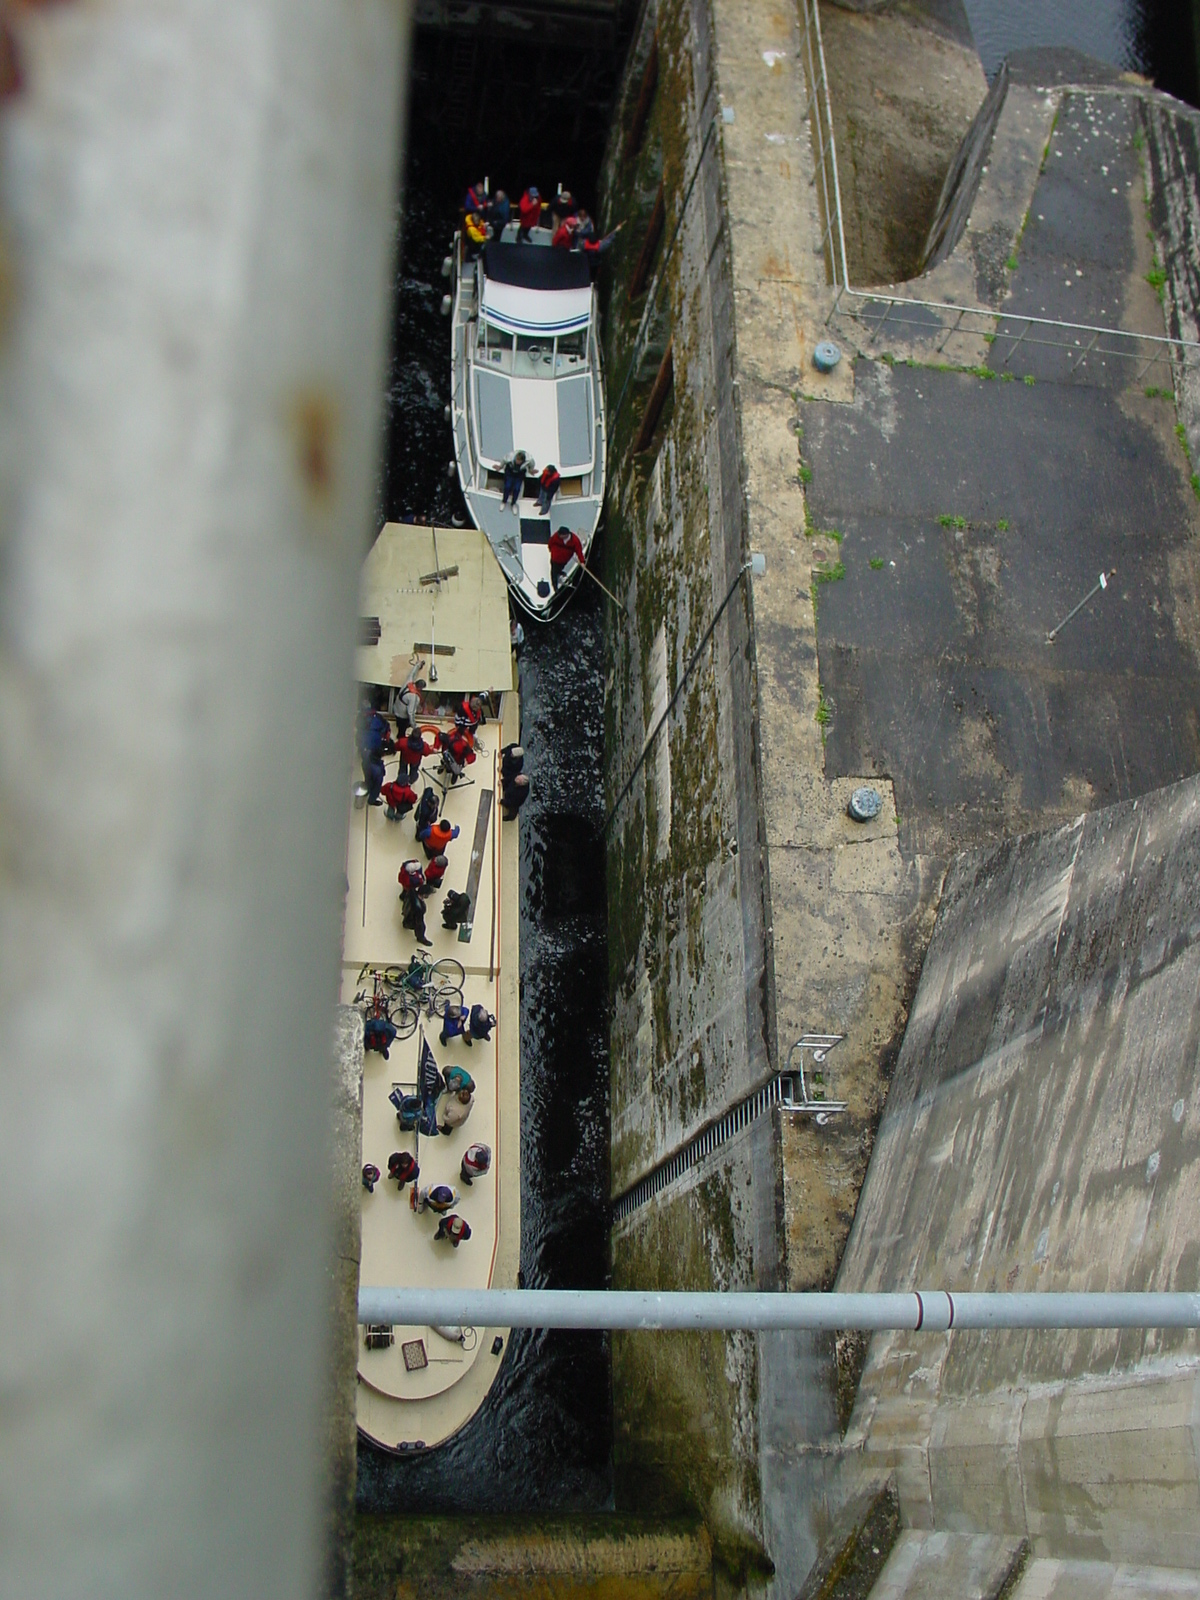 Boats at the bottom of the lower chamber in Ardnacrusha lock, seen from the top of the upper chamber